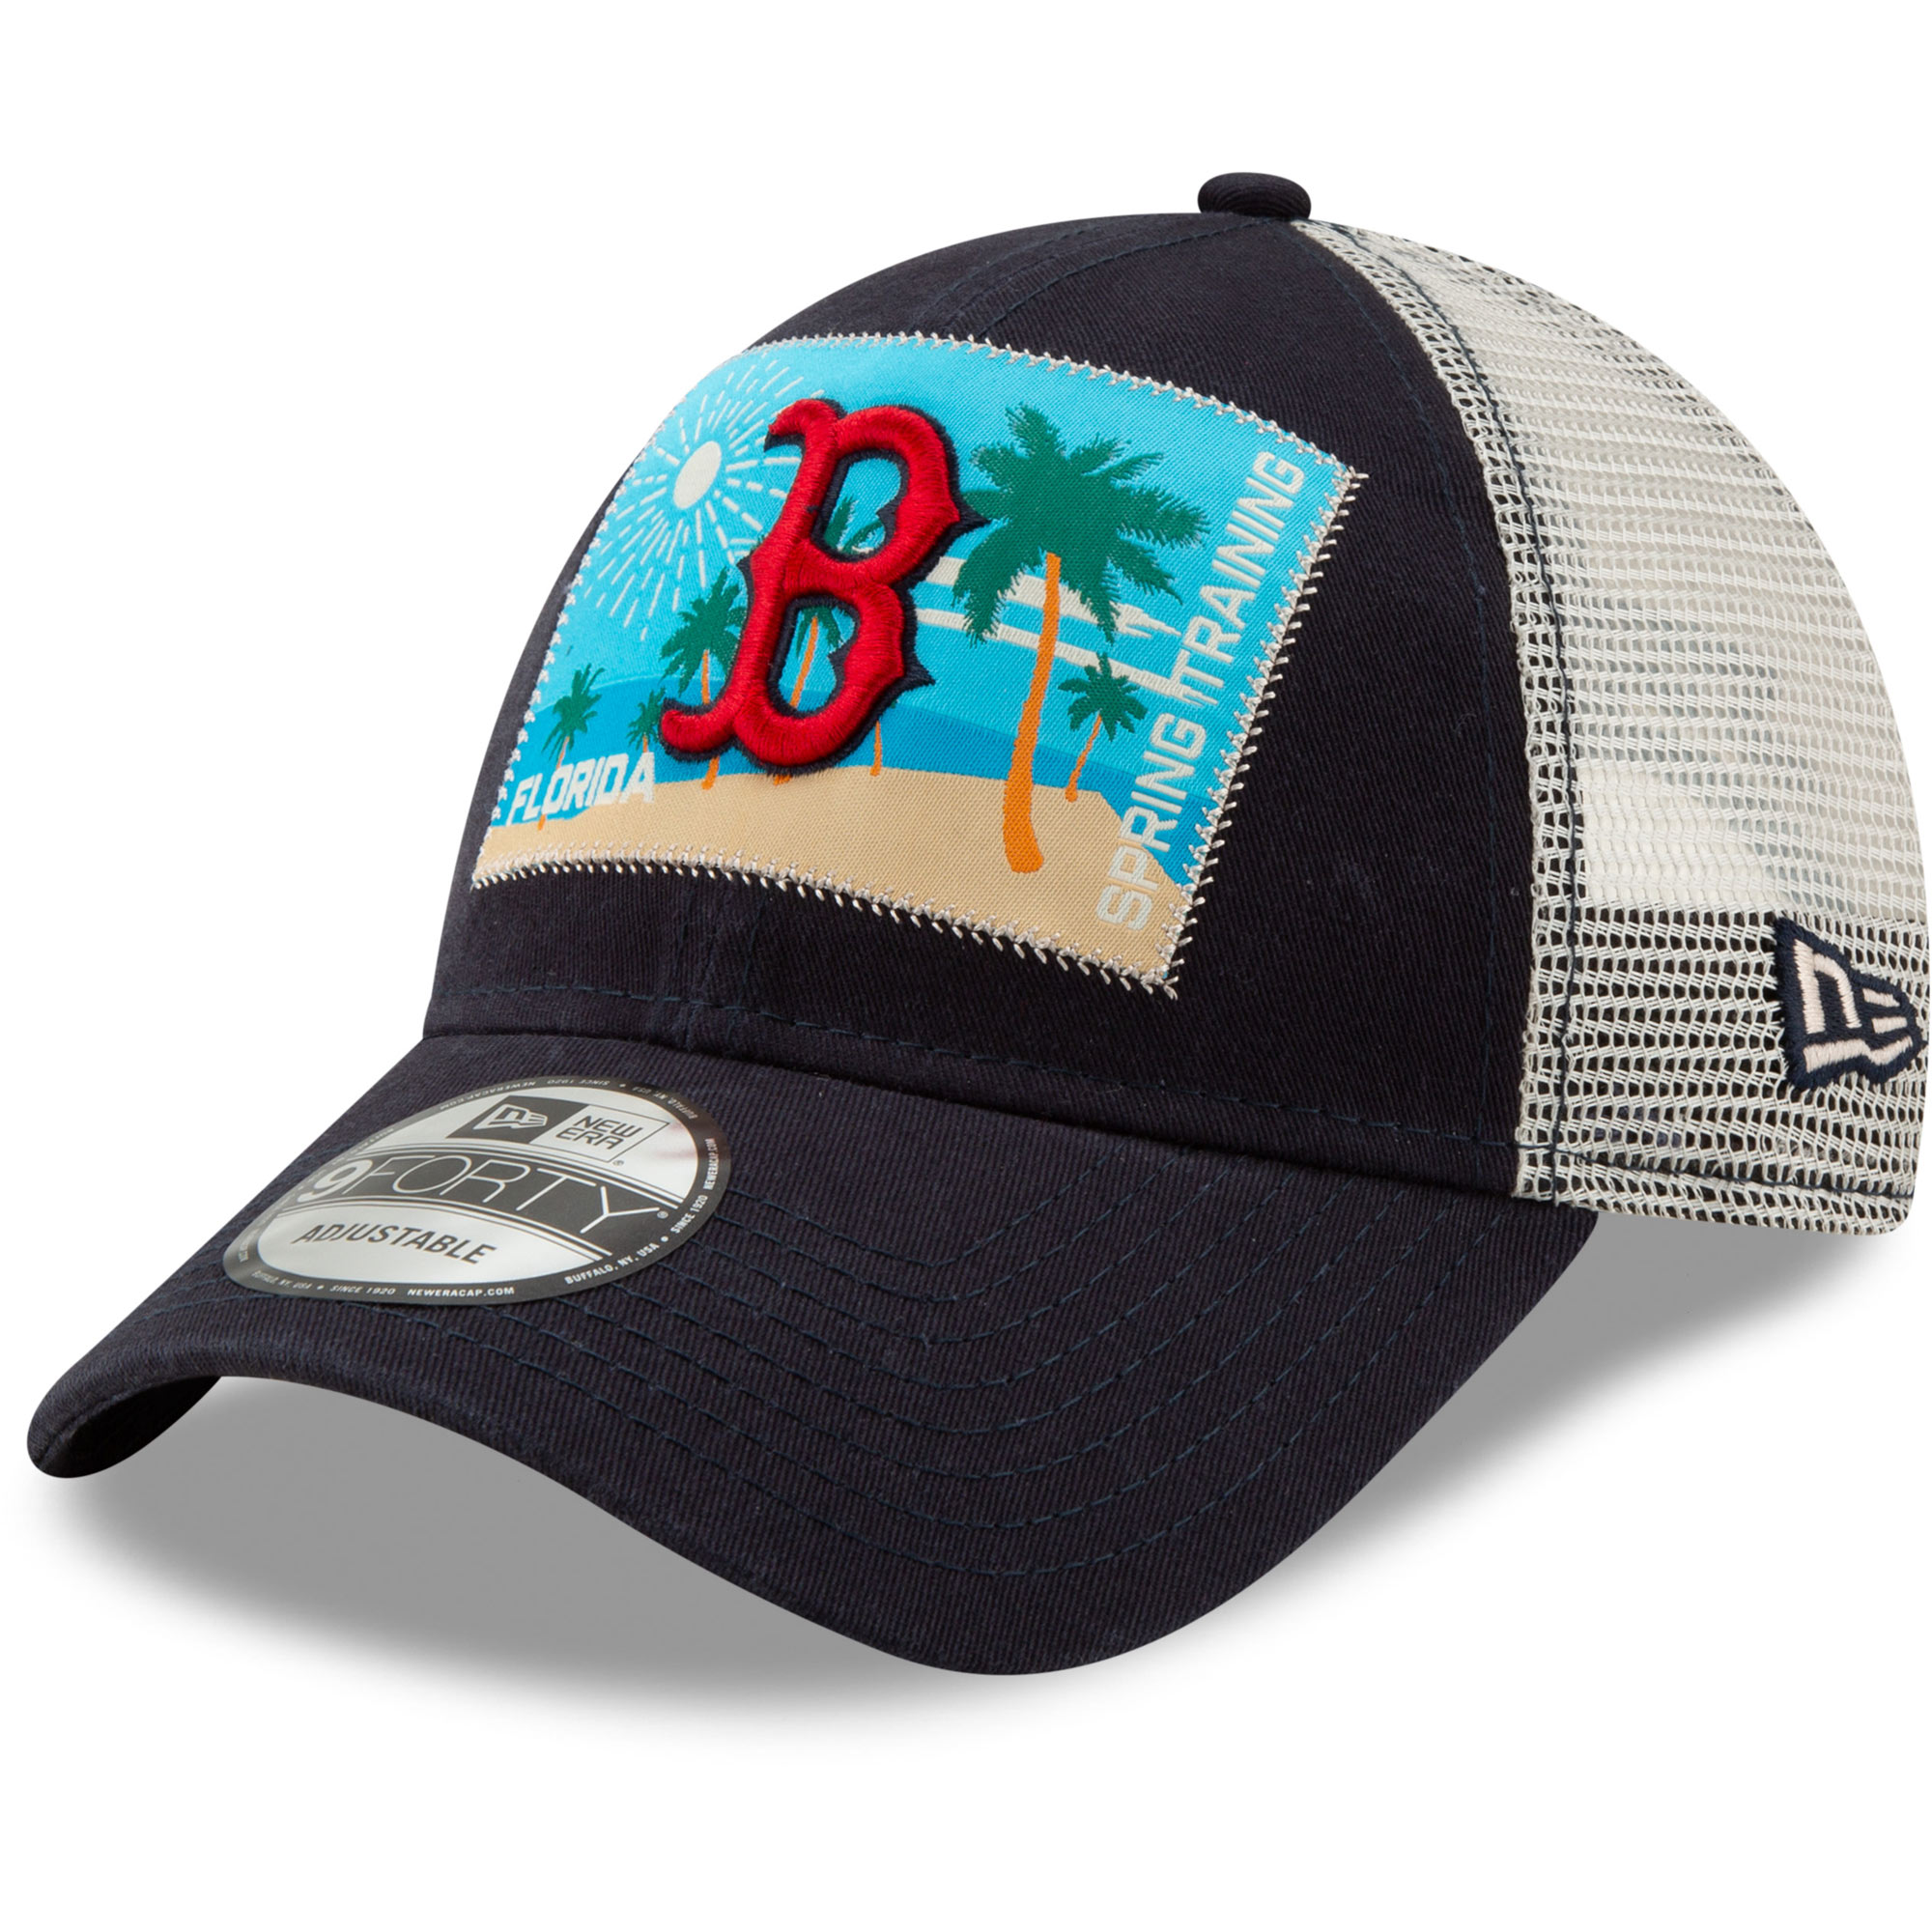 293af10102 Boston Red Sox New Era Patched Trucker 3 9FORTY Adjustable Snapback Hat -  Navy White - OSFA - Walmart.com